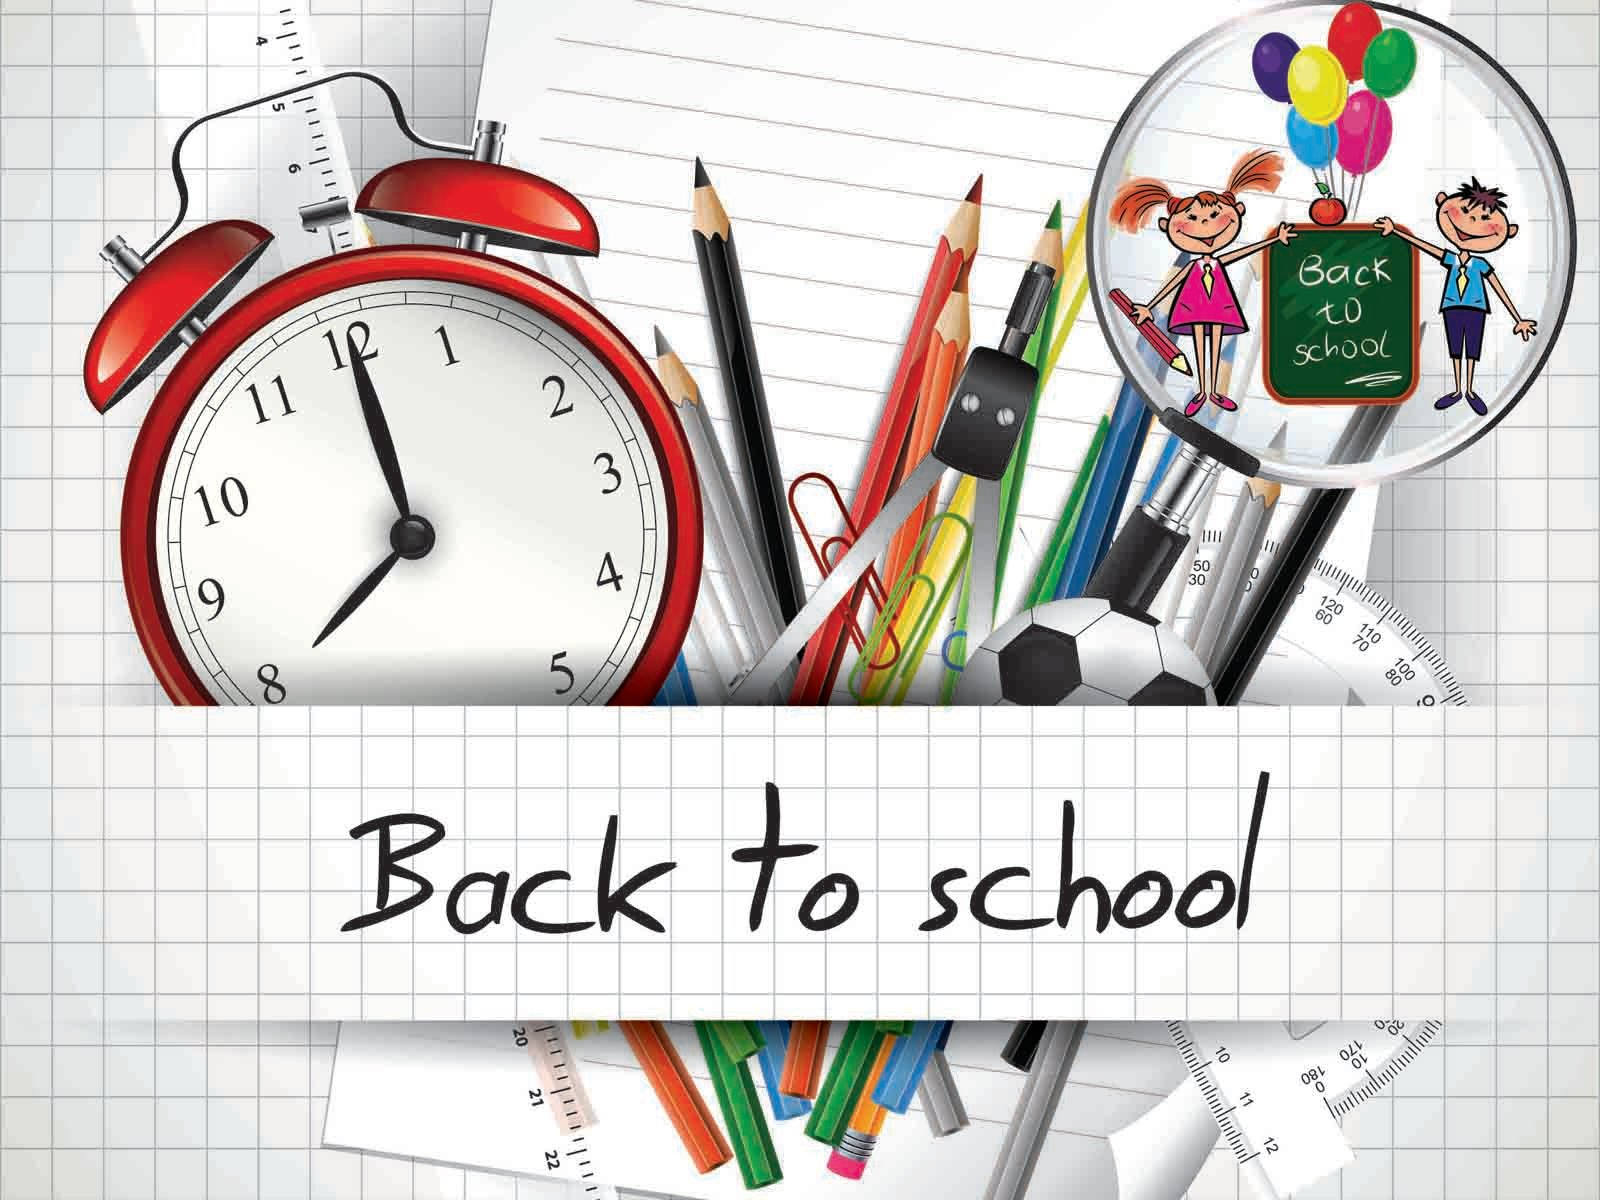 Back to School 800x600 pixel PPT Backgrounds for Powerpoint 1600x1200